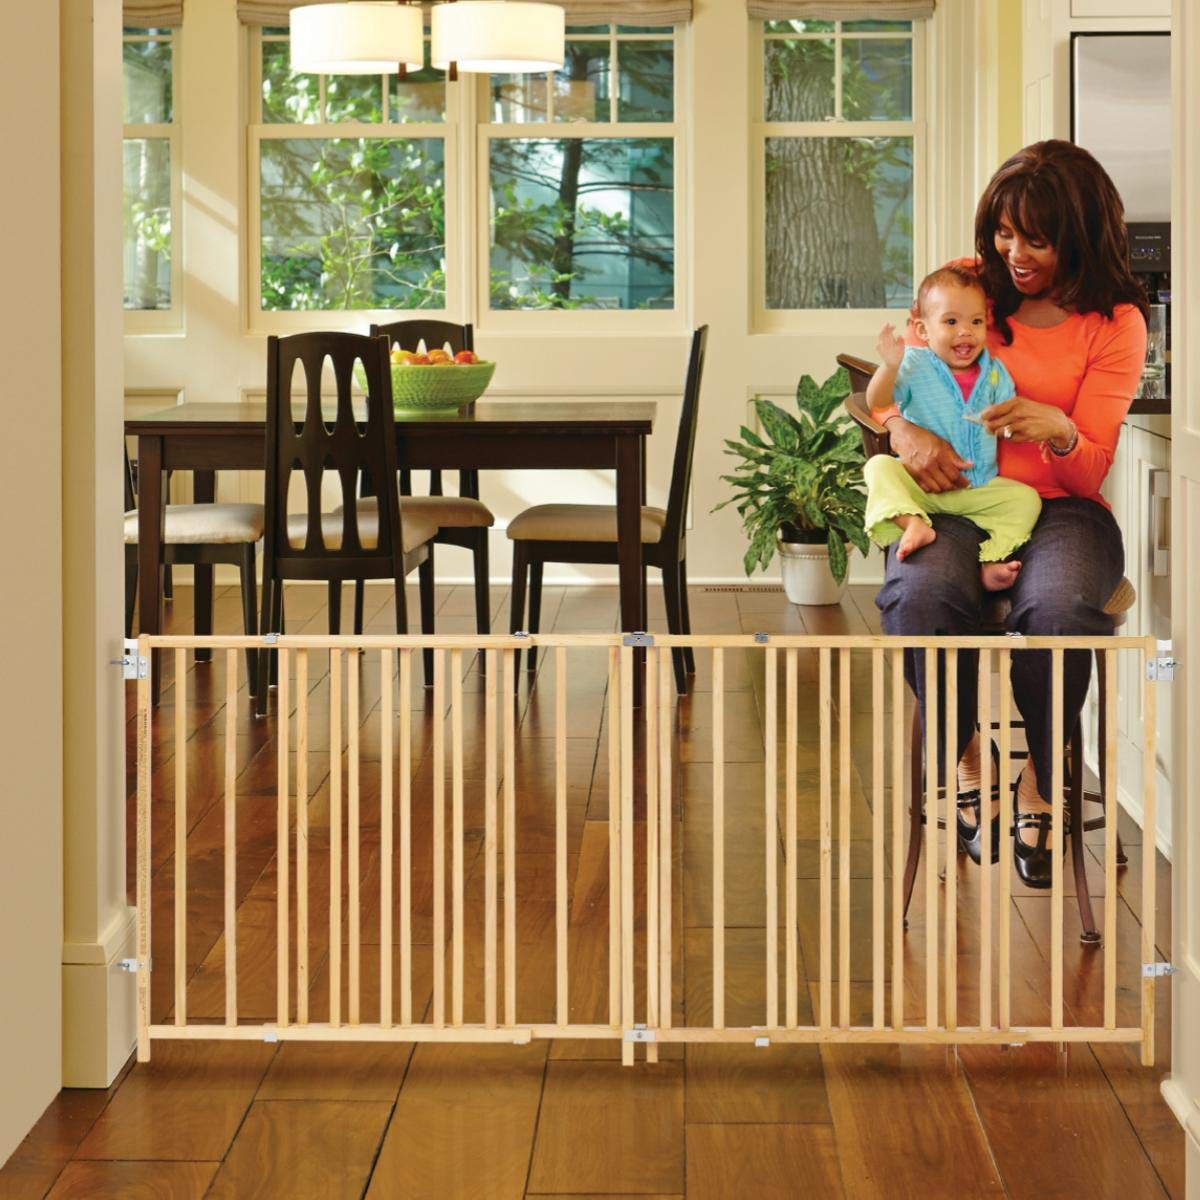 "B0002JETPQ North States 103"" Wide Extra-Wide Swing Baby Gate: Perfect for Oversized Spaces. No Threshold and one-Hand Operation. Hardware Mount. Fits 60""-103"" Wide (27"" Tall, Sustainable Hardwood) 71o2MQK0XIL._SL1200_"